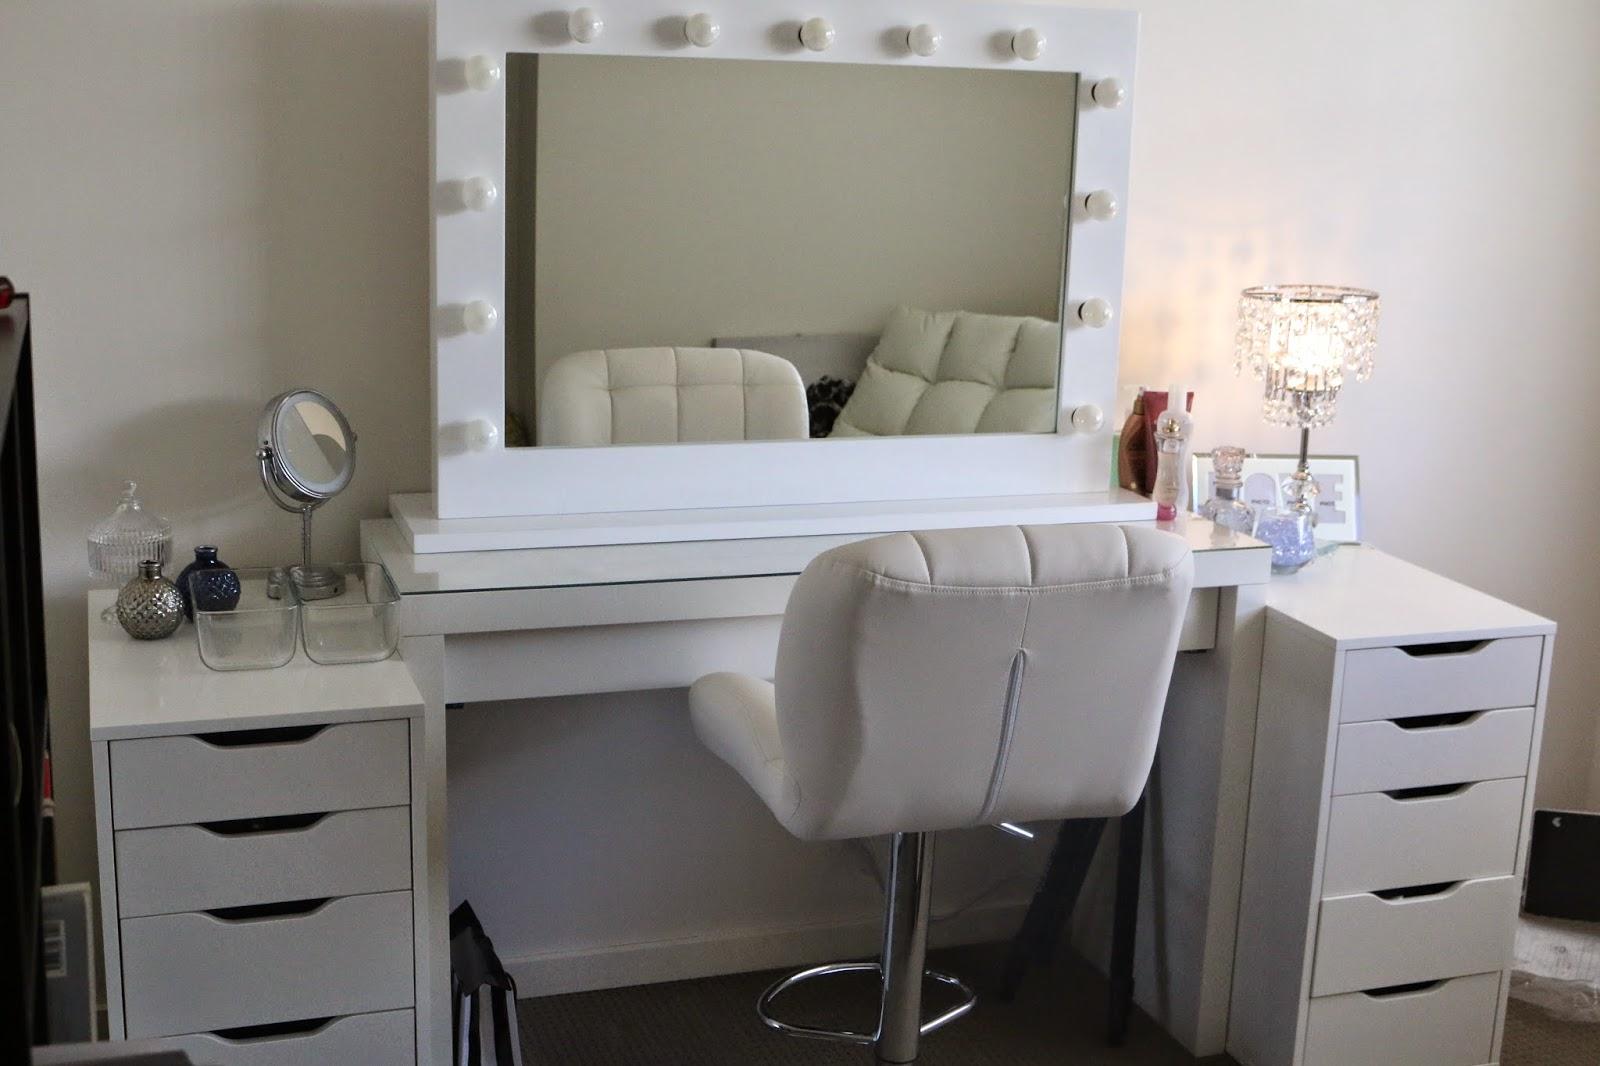 Mirror with Light Bulbs | Makeup Vanity Table with Lighted Mirror | Makeup Vanity Table with Lights